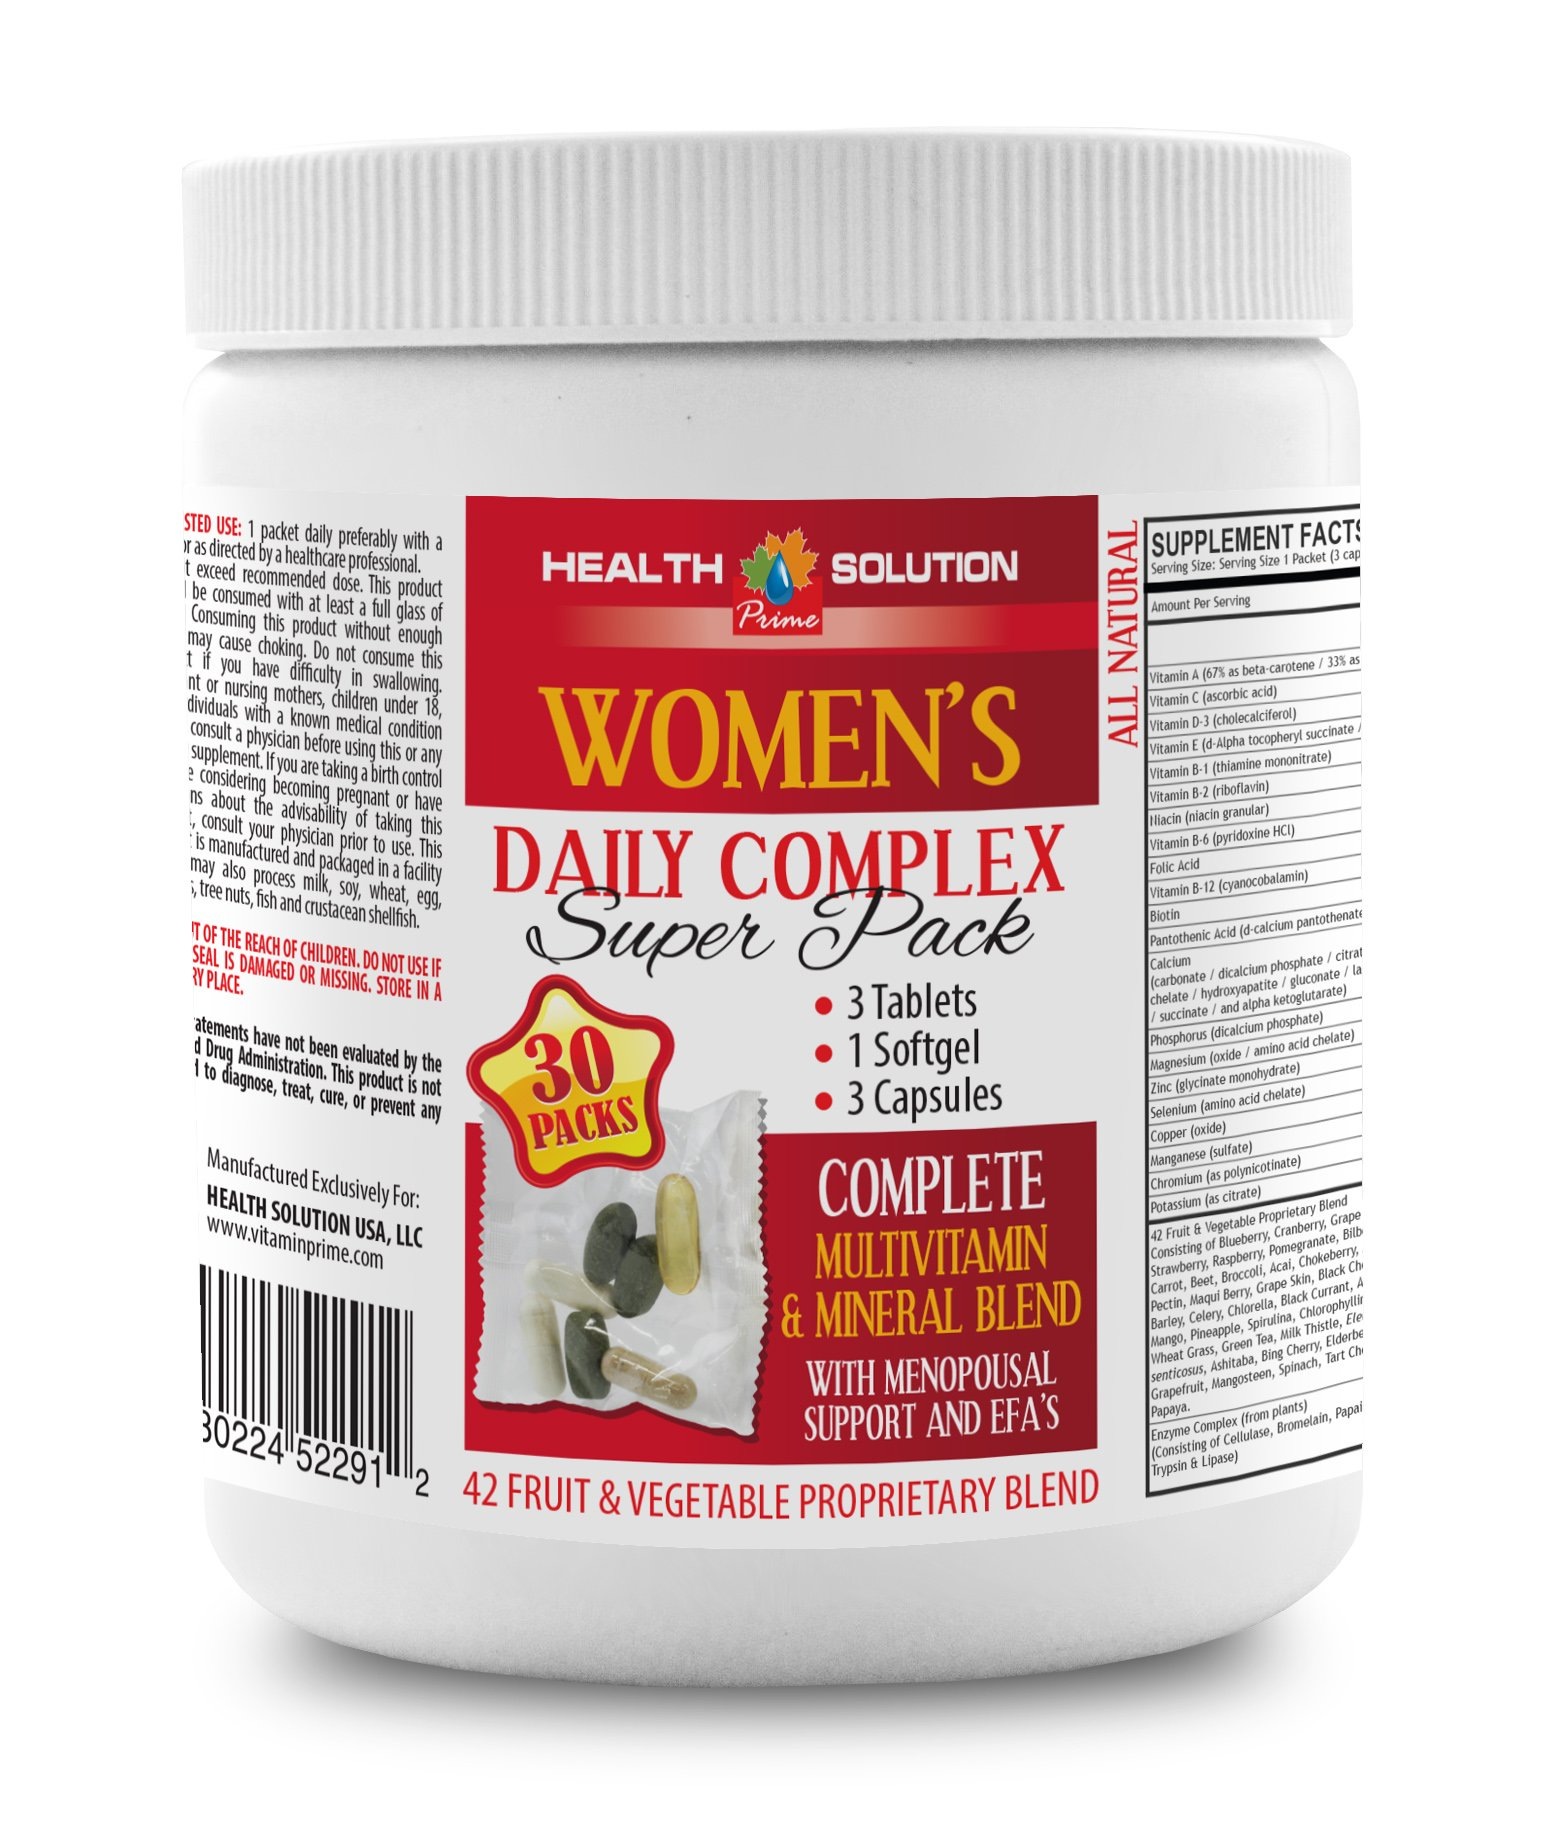 Nail Hair and Skin Supplement - Women's Daily Complex - Super Pack - Green Tea Weight Loss Supplements - 1 Can 30 Packs (210 Pills)